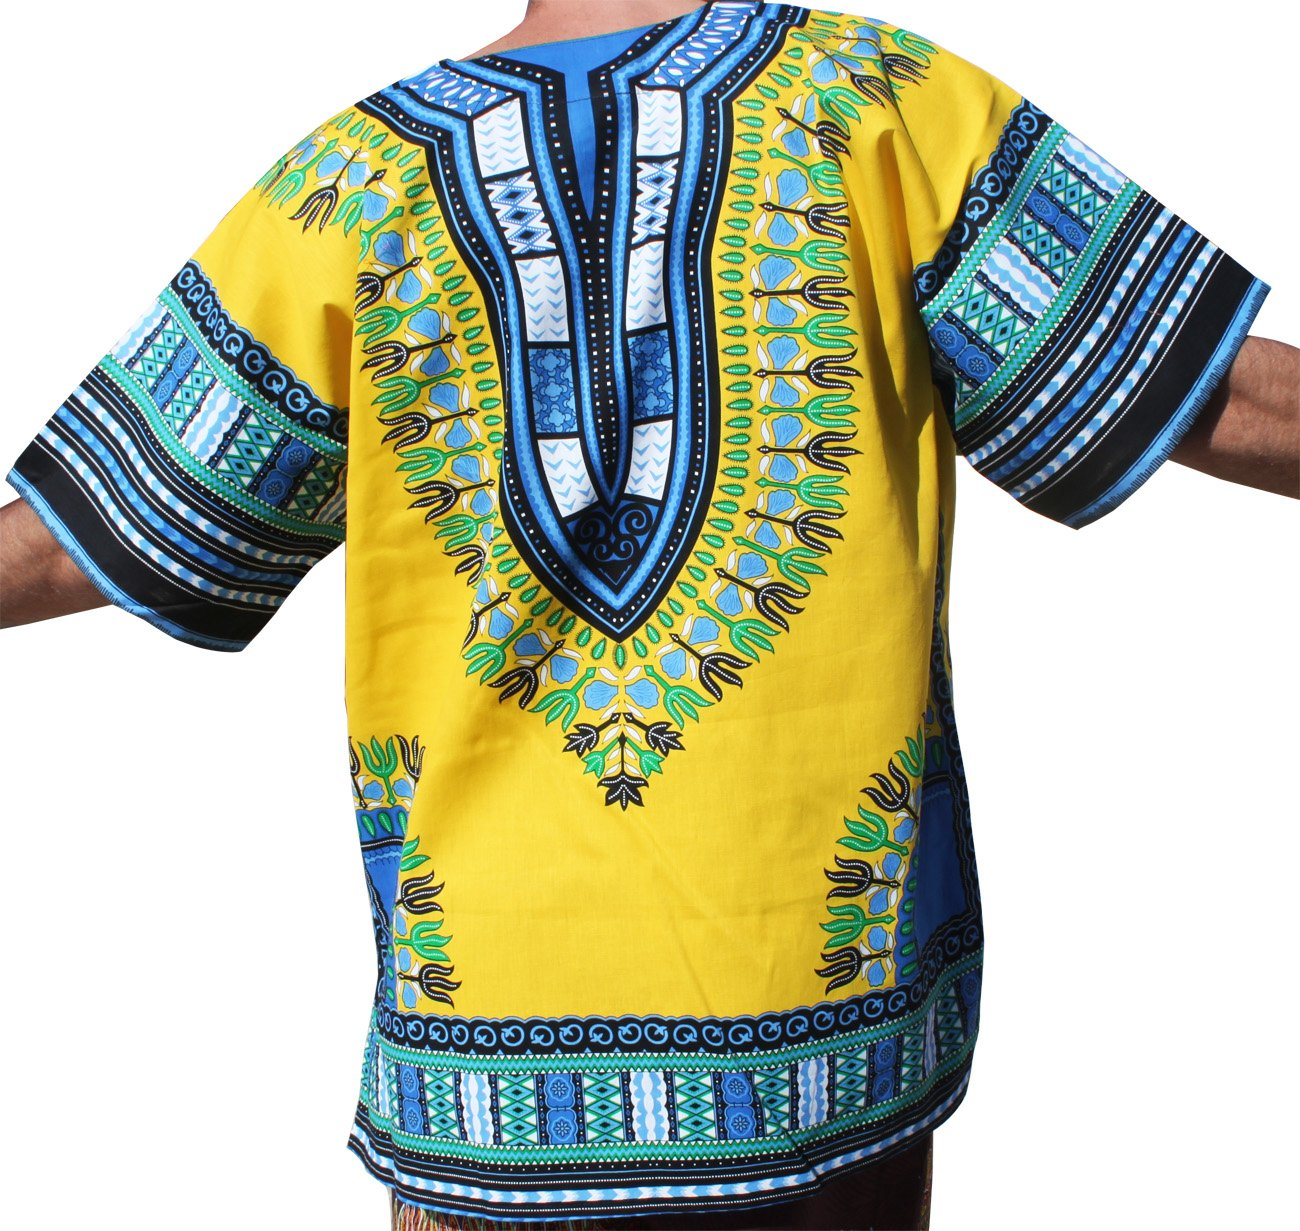 RaanPahMuang Brand Unisex Bright Colour Cotton Africa Dashiki Shirt Plain Front, X-Large, Amber Yellow by Raan Pah Muang (Image #2)